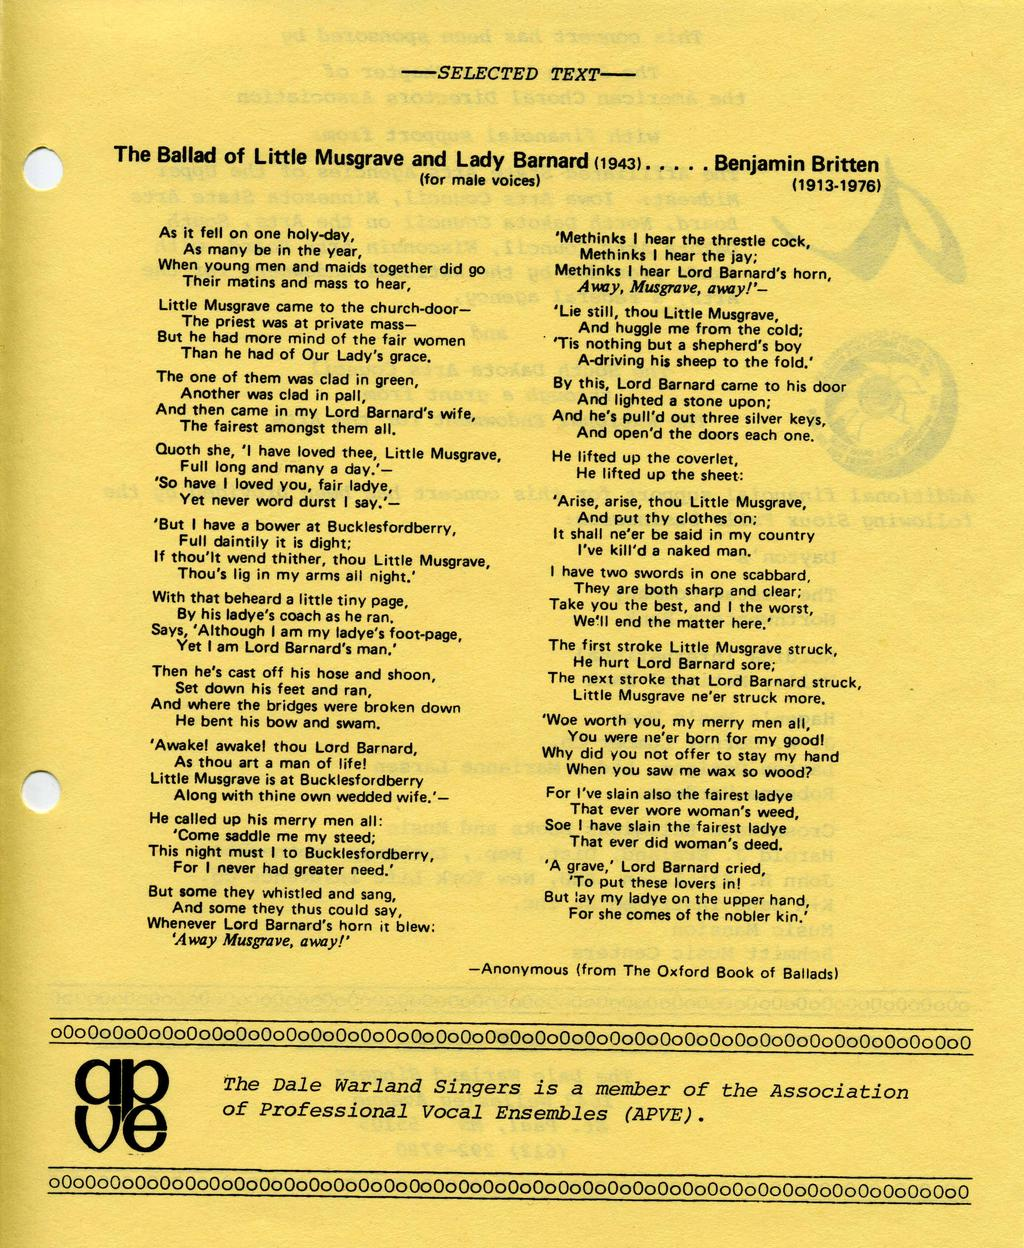 -SELECTED TEXT- The Ballad of Little Musgrave and Lady Barnard (1943). (for male voices)!'.